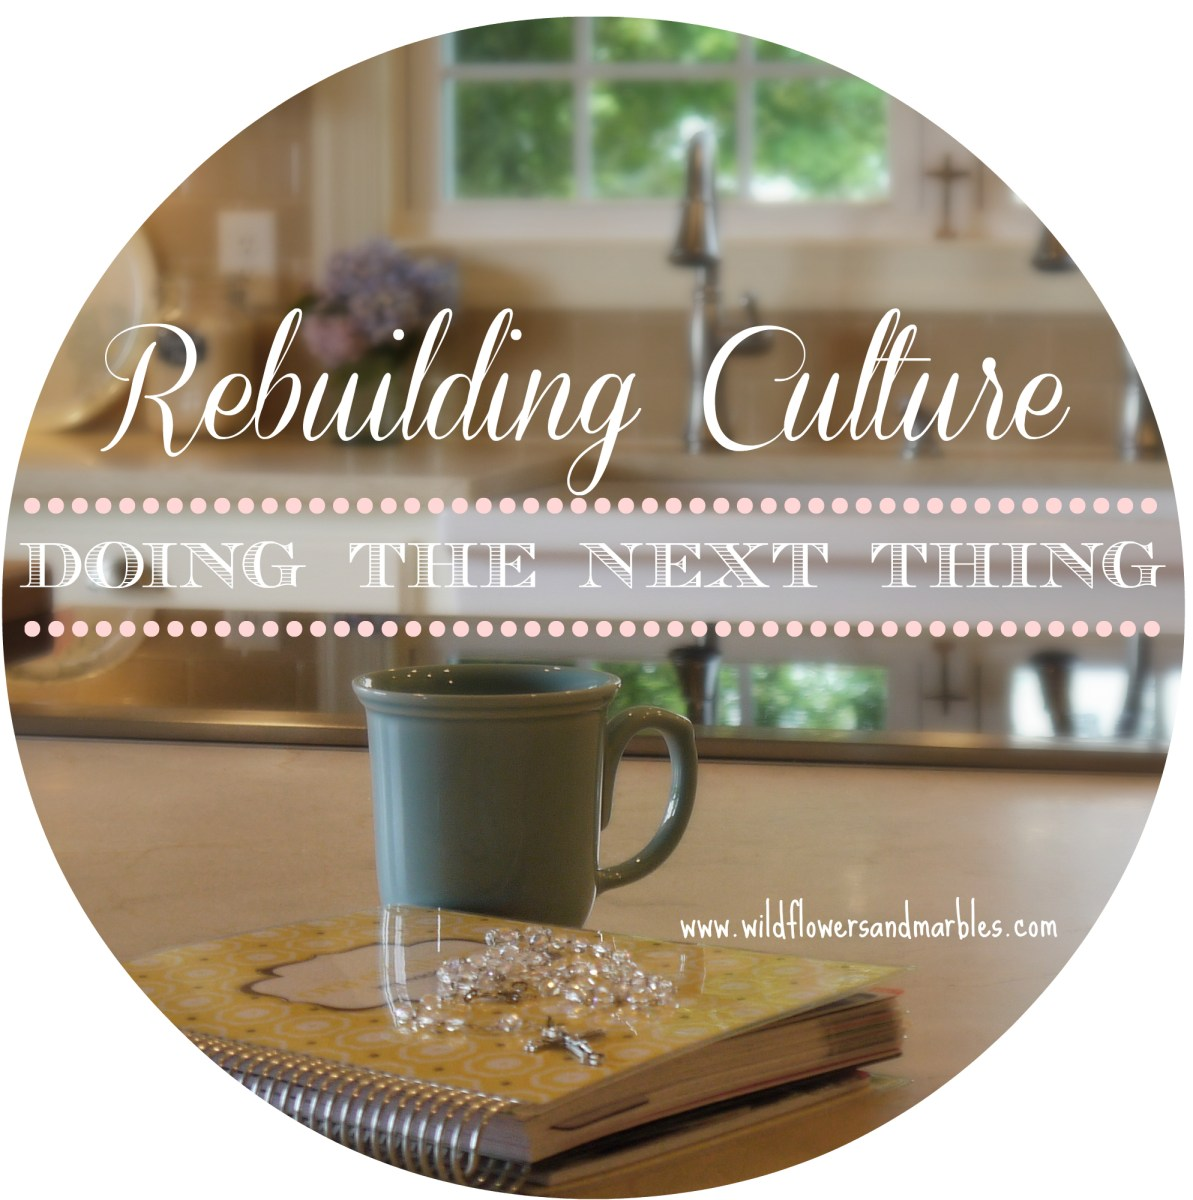 Truth & Beauty: Rebuilding Culture By Doing the Next Thing